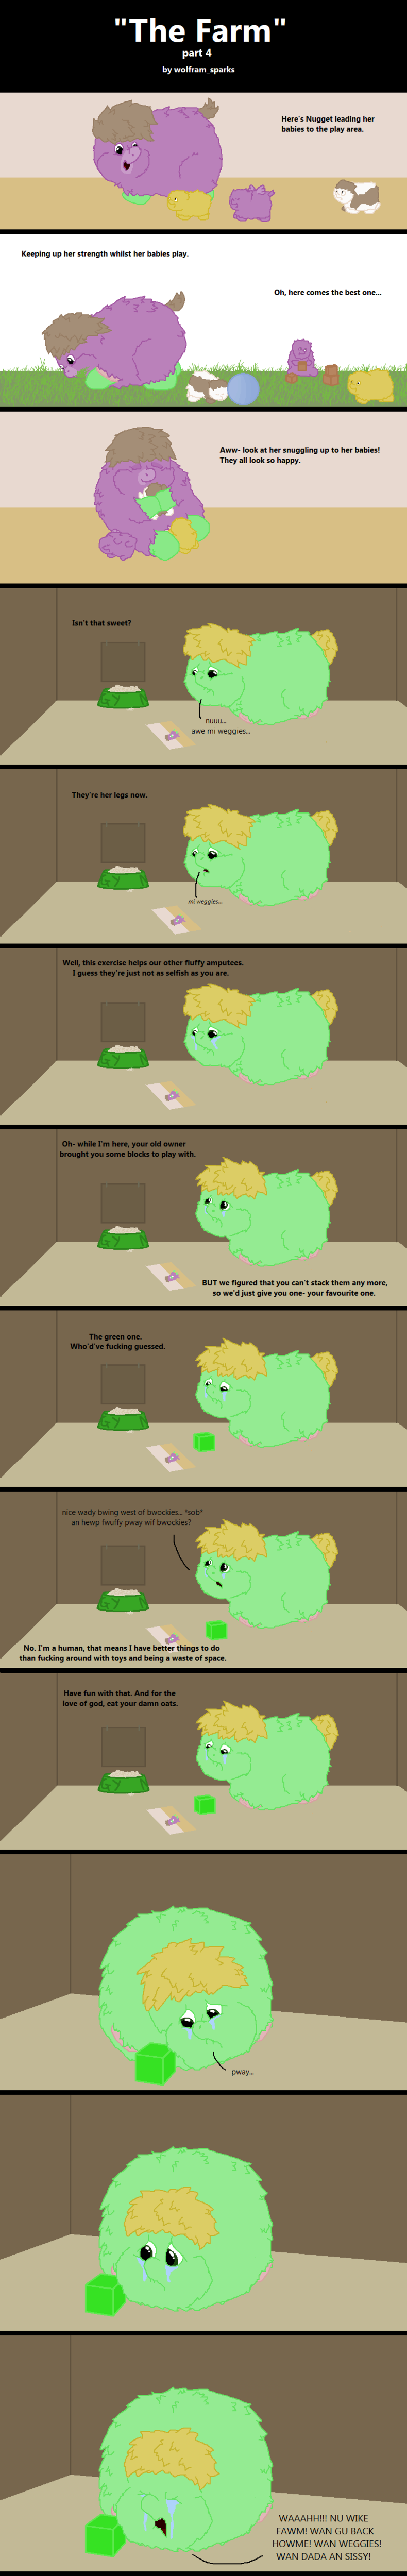 17967 - abuse alone amputee arist-wolfram_sparks artist-wolfram_sparks blocks comic crying dep...png